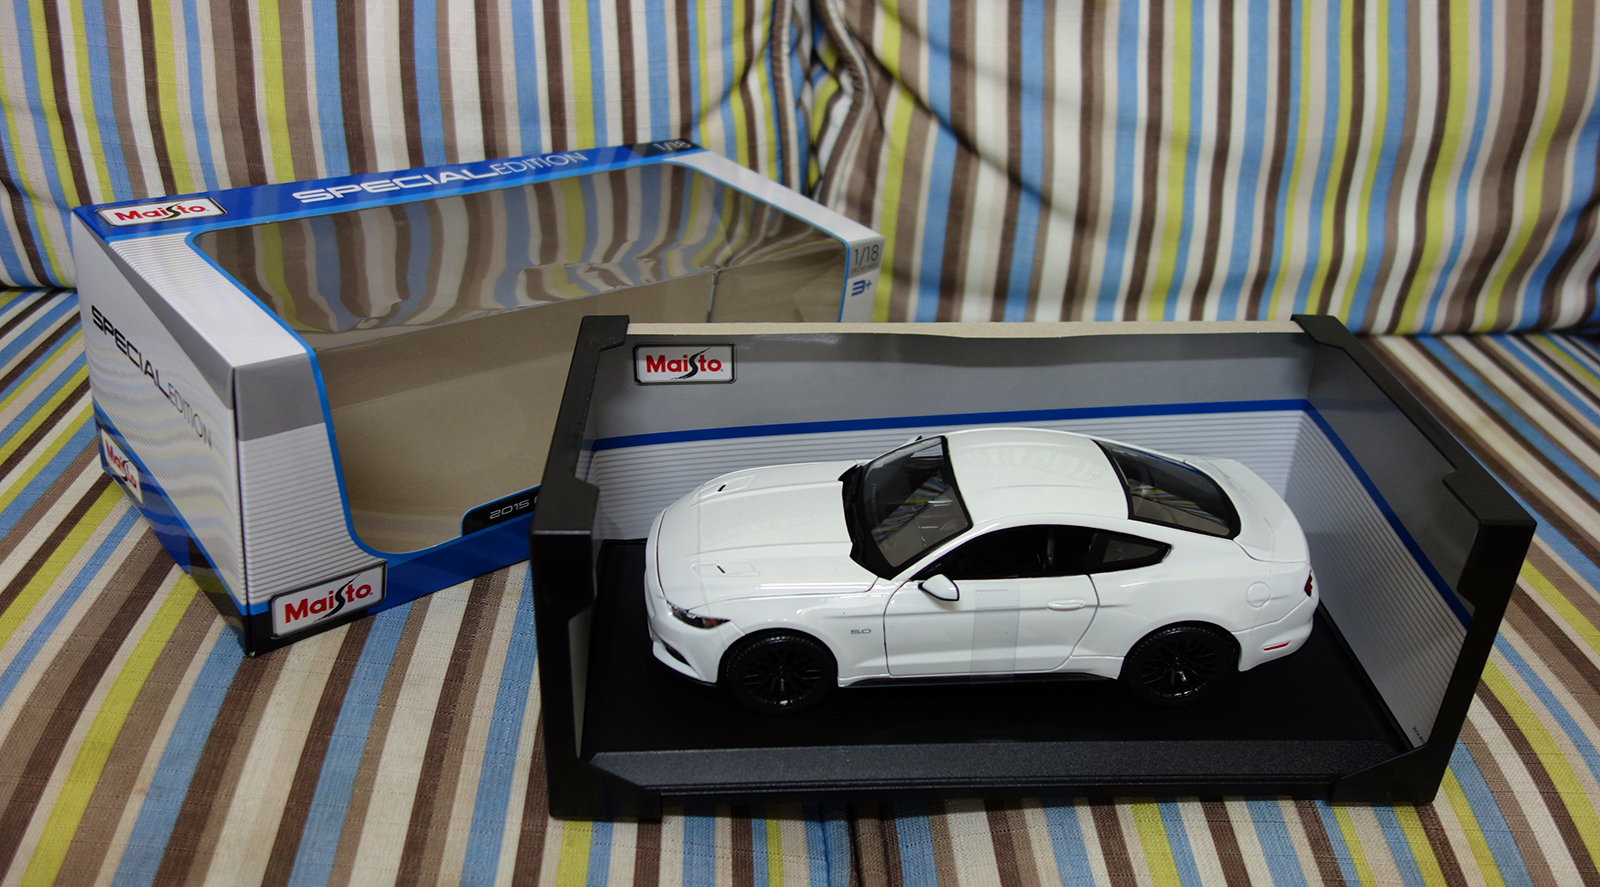 Maisto 1:18 Ford Mustang 2015 - Unboxed